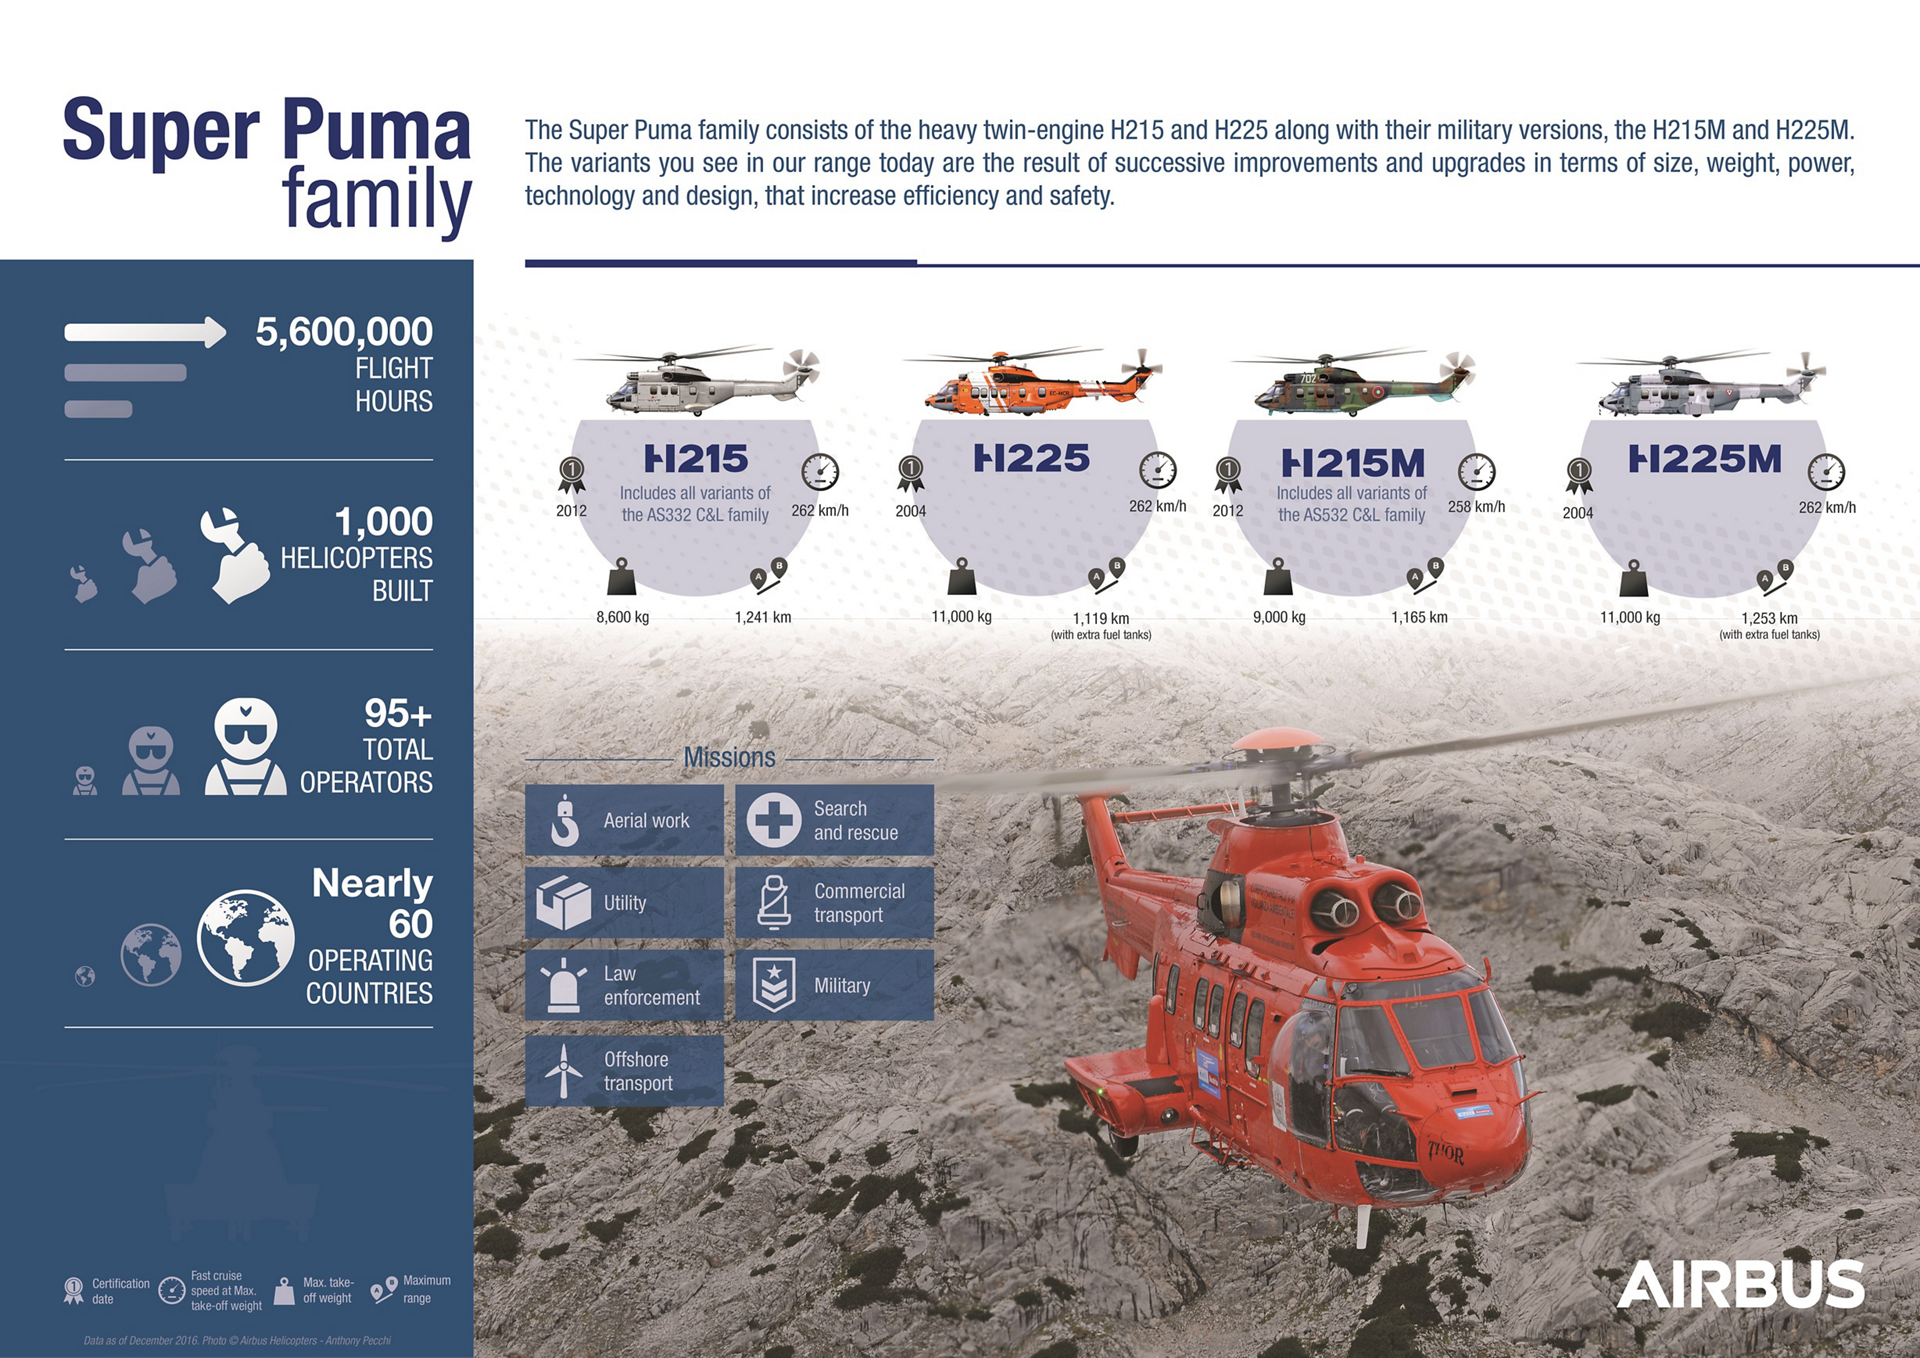 The Super Puma family consists of the heavy twin-engine H215 and H225 along with their military version, the H215M and H225. The variants you see in our range today are the result of successive improvements and upgrades in terms of size, weight, power, technology and design, that increase efficiency and safety.